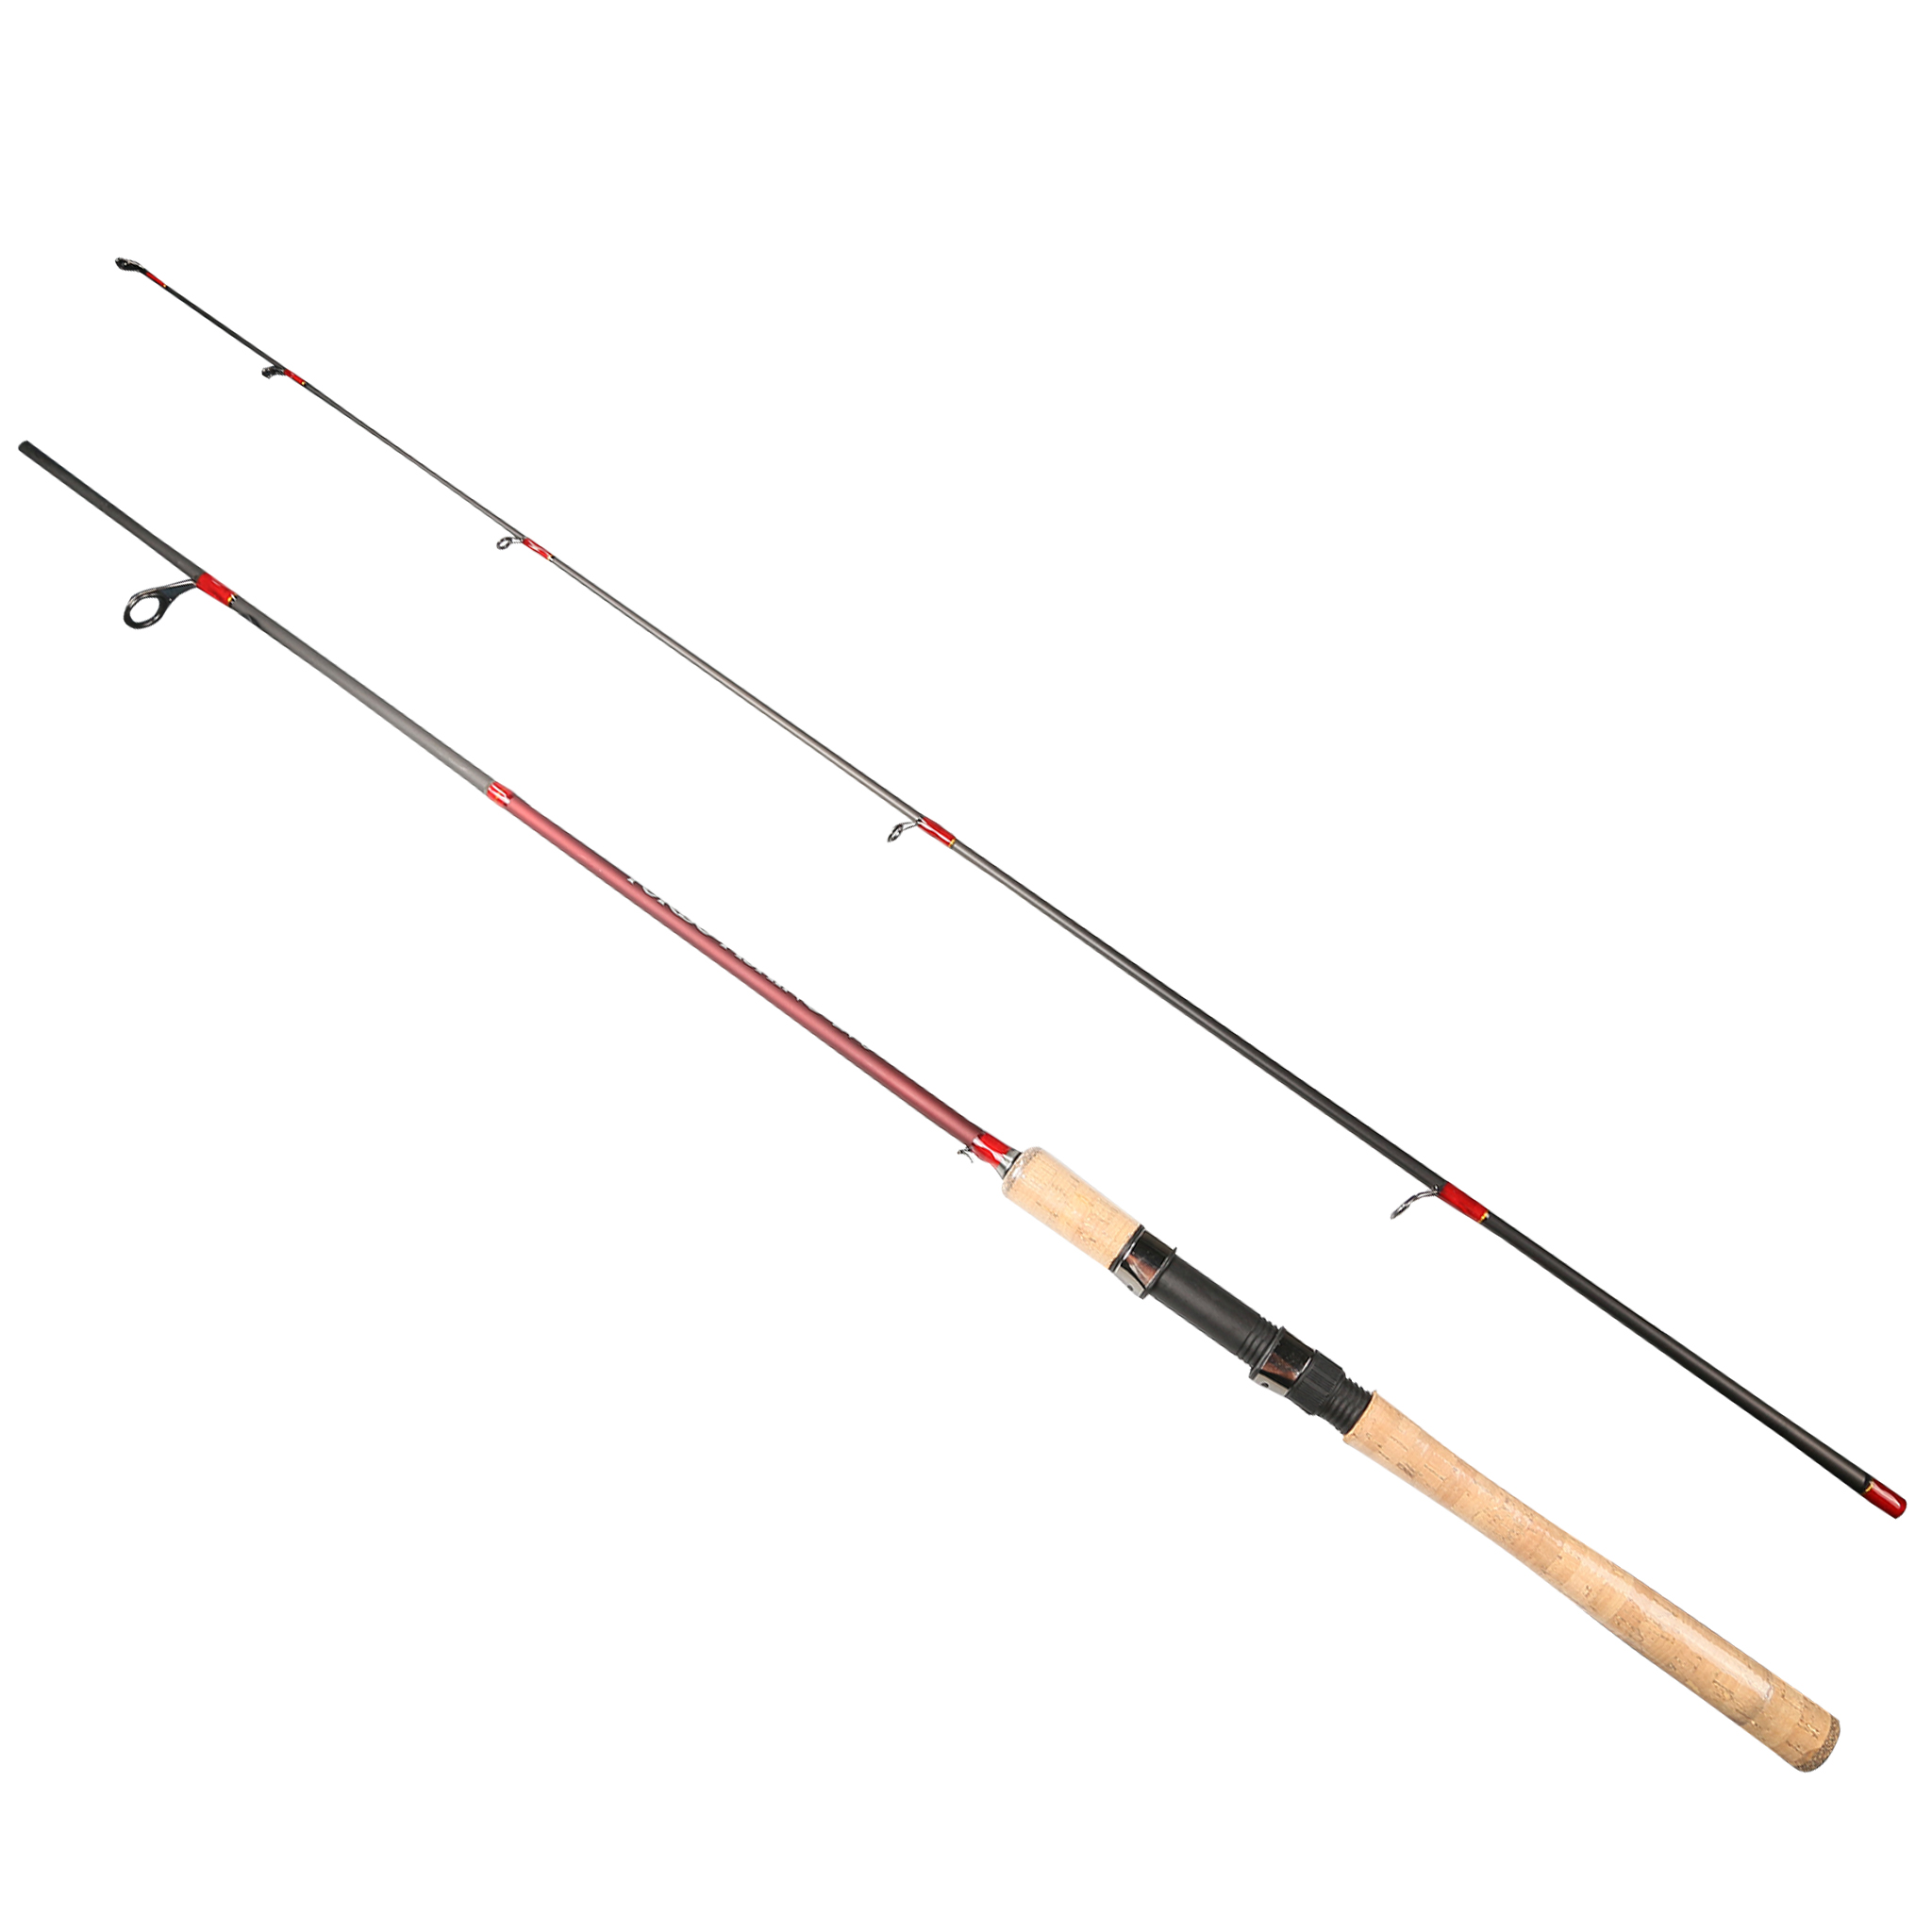 Buy 2 1 2 section red fishing rod for Red fishing line